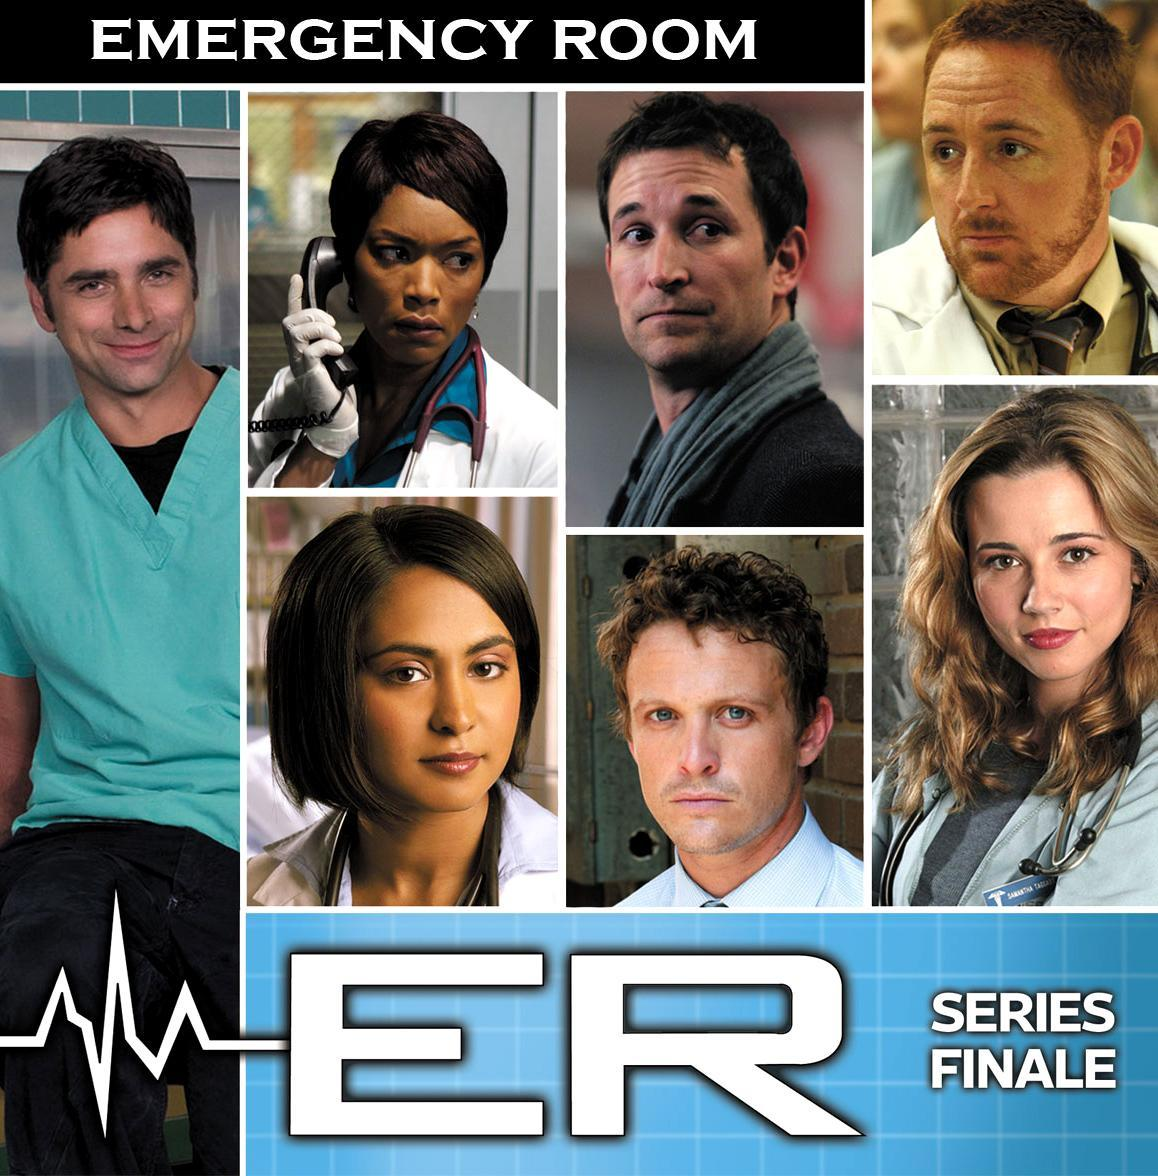 Image Gallery For ER TV Series